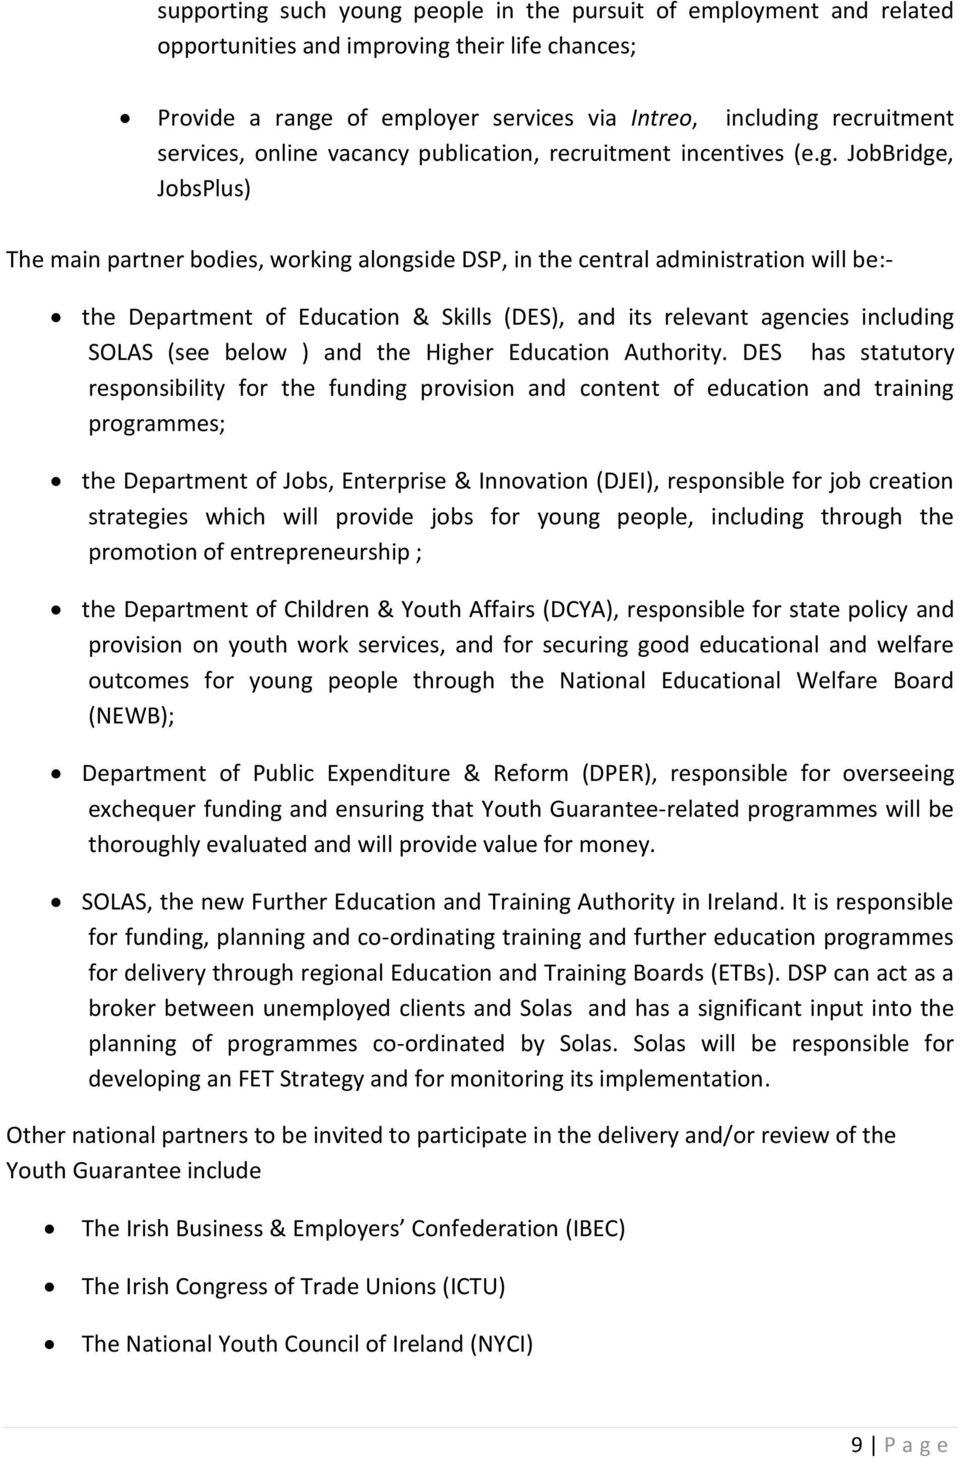 JobBridge, JobsPlus) The main partner bodies, working alongside DSP, in the central administration will be:- the Department of Education & Skills (DES), and its relevant agencies including SOLAS (see